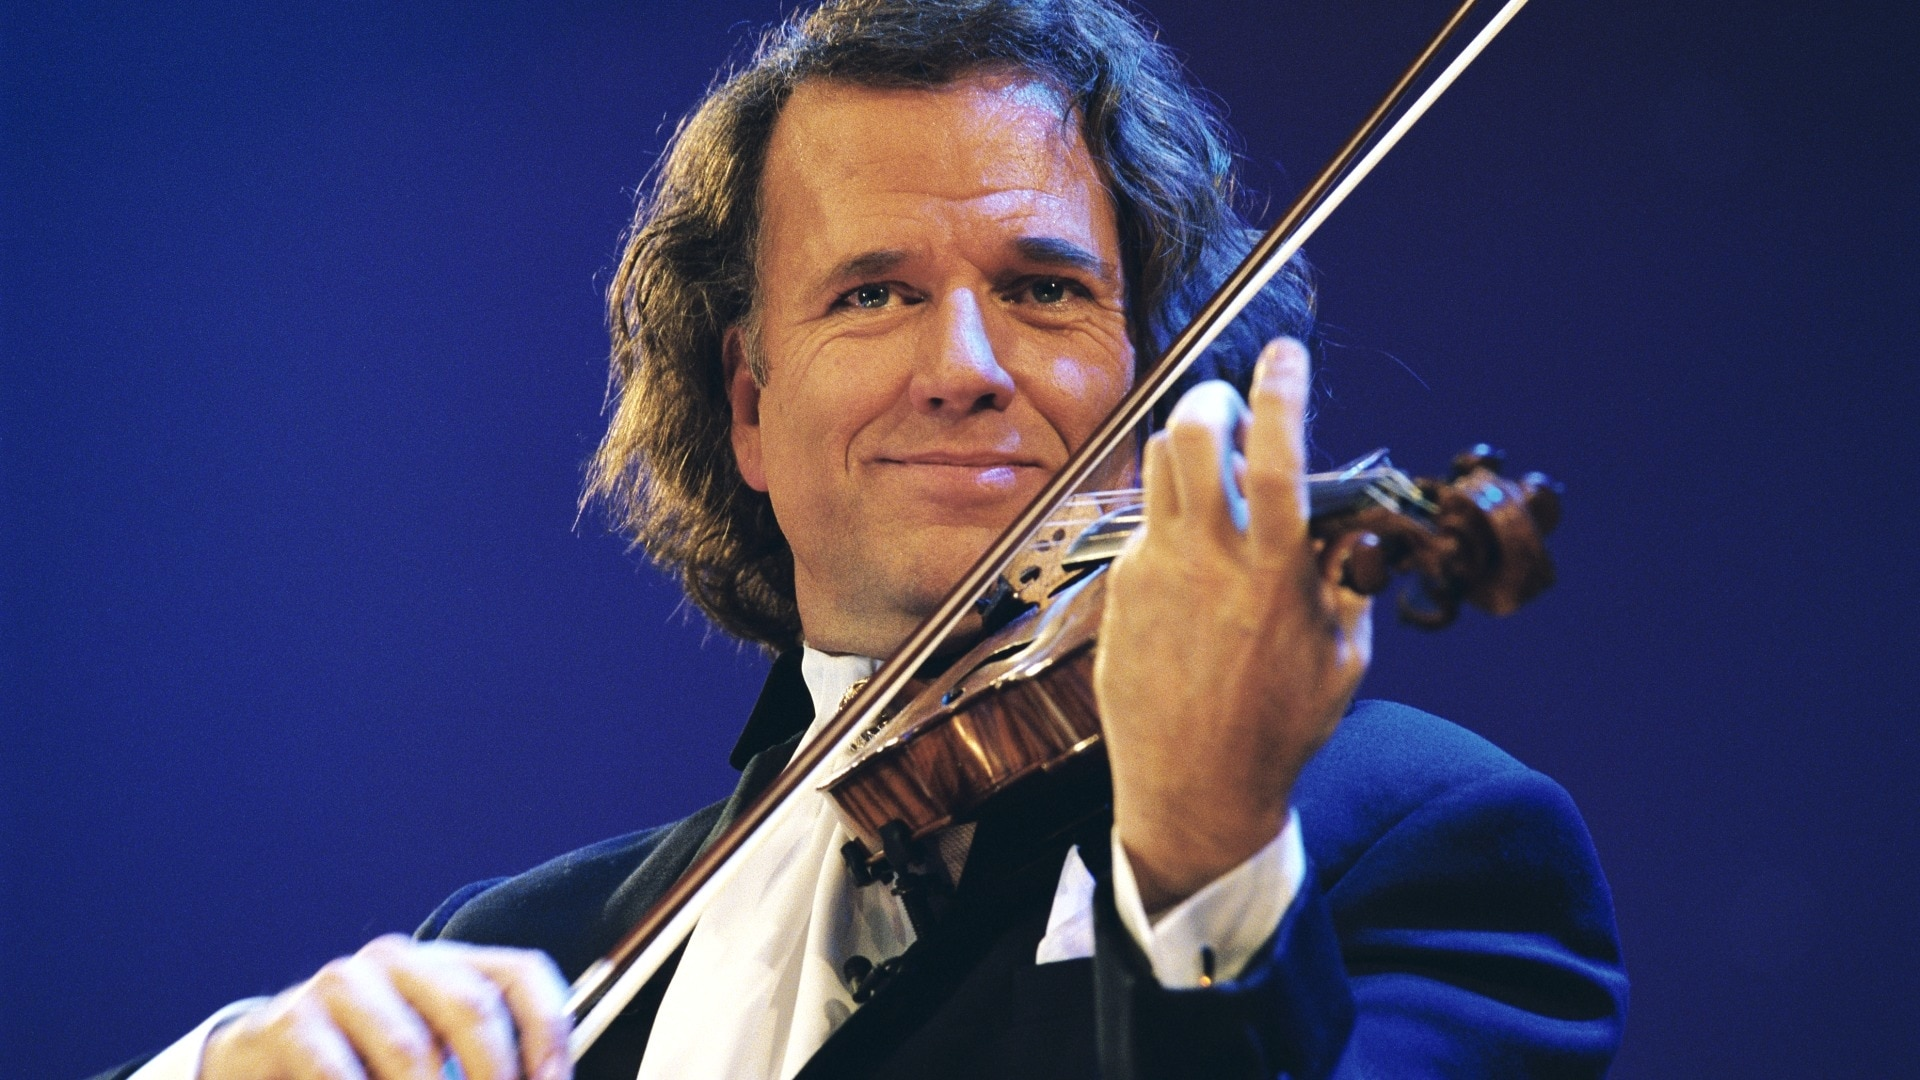 Andre Rieu: New Year's Eve In Vienna